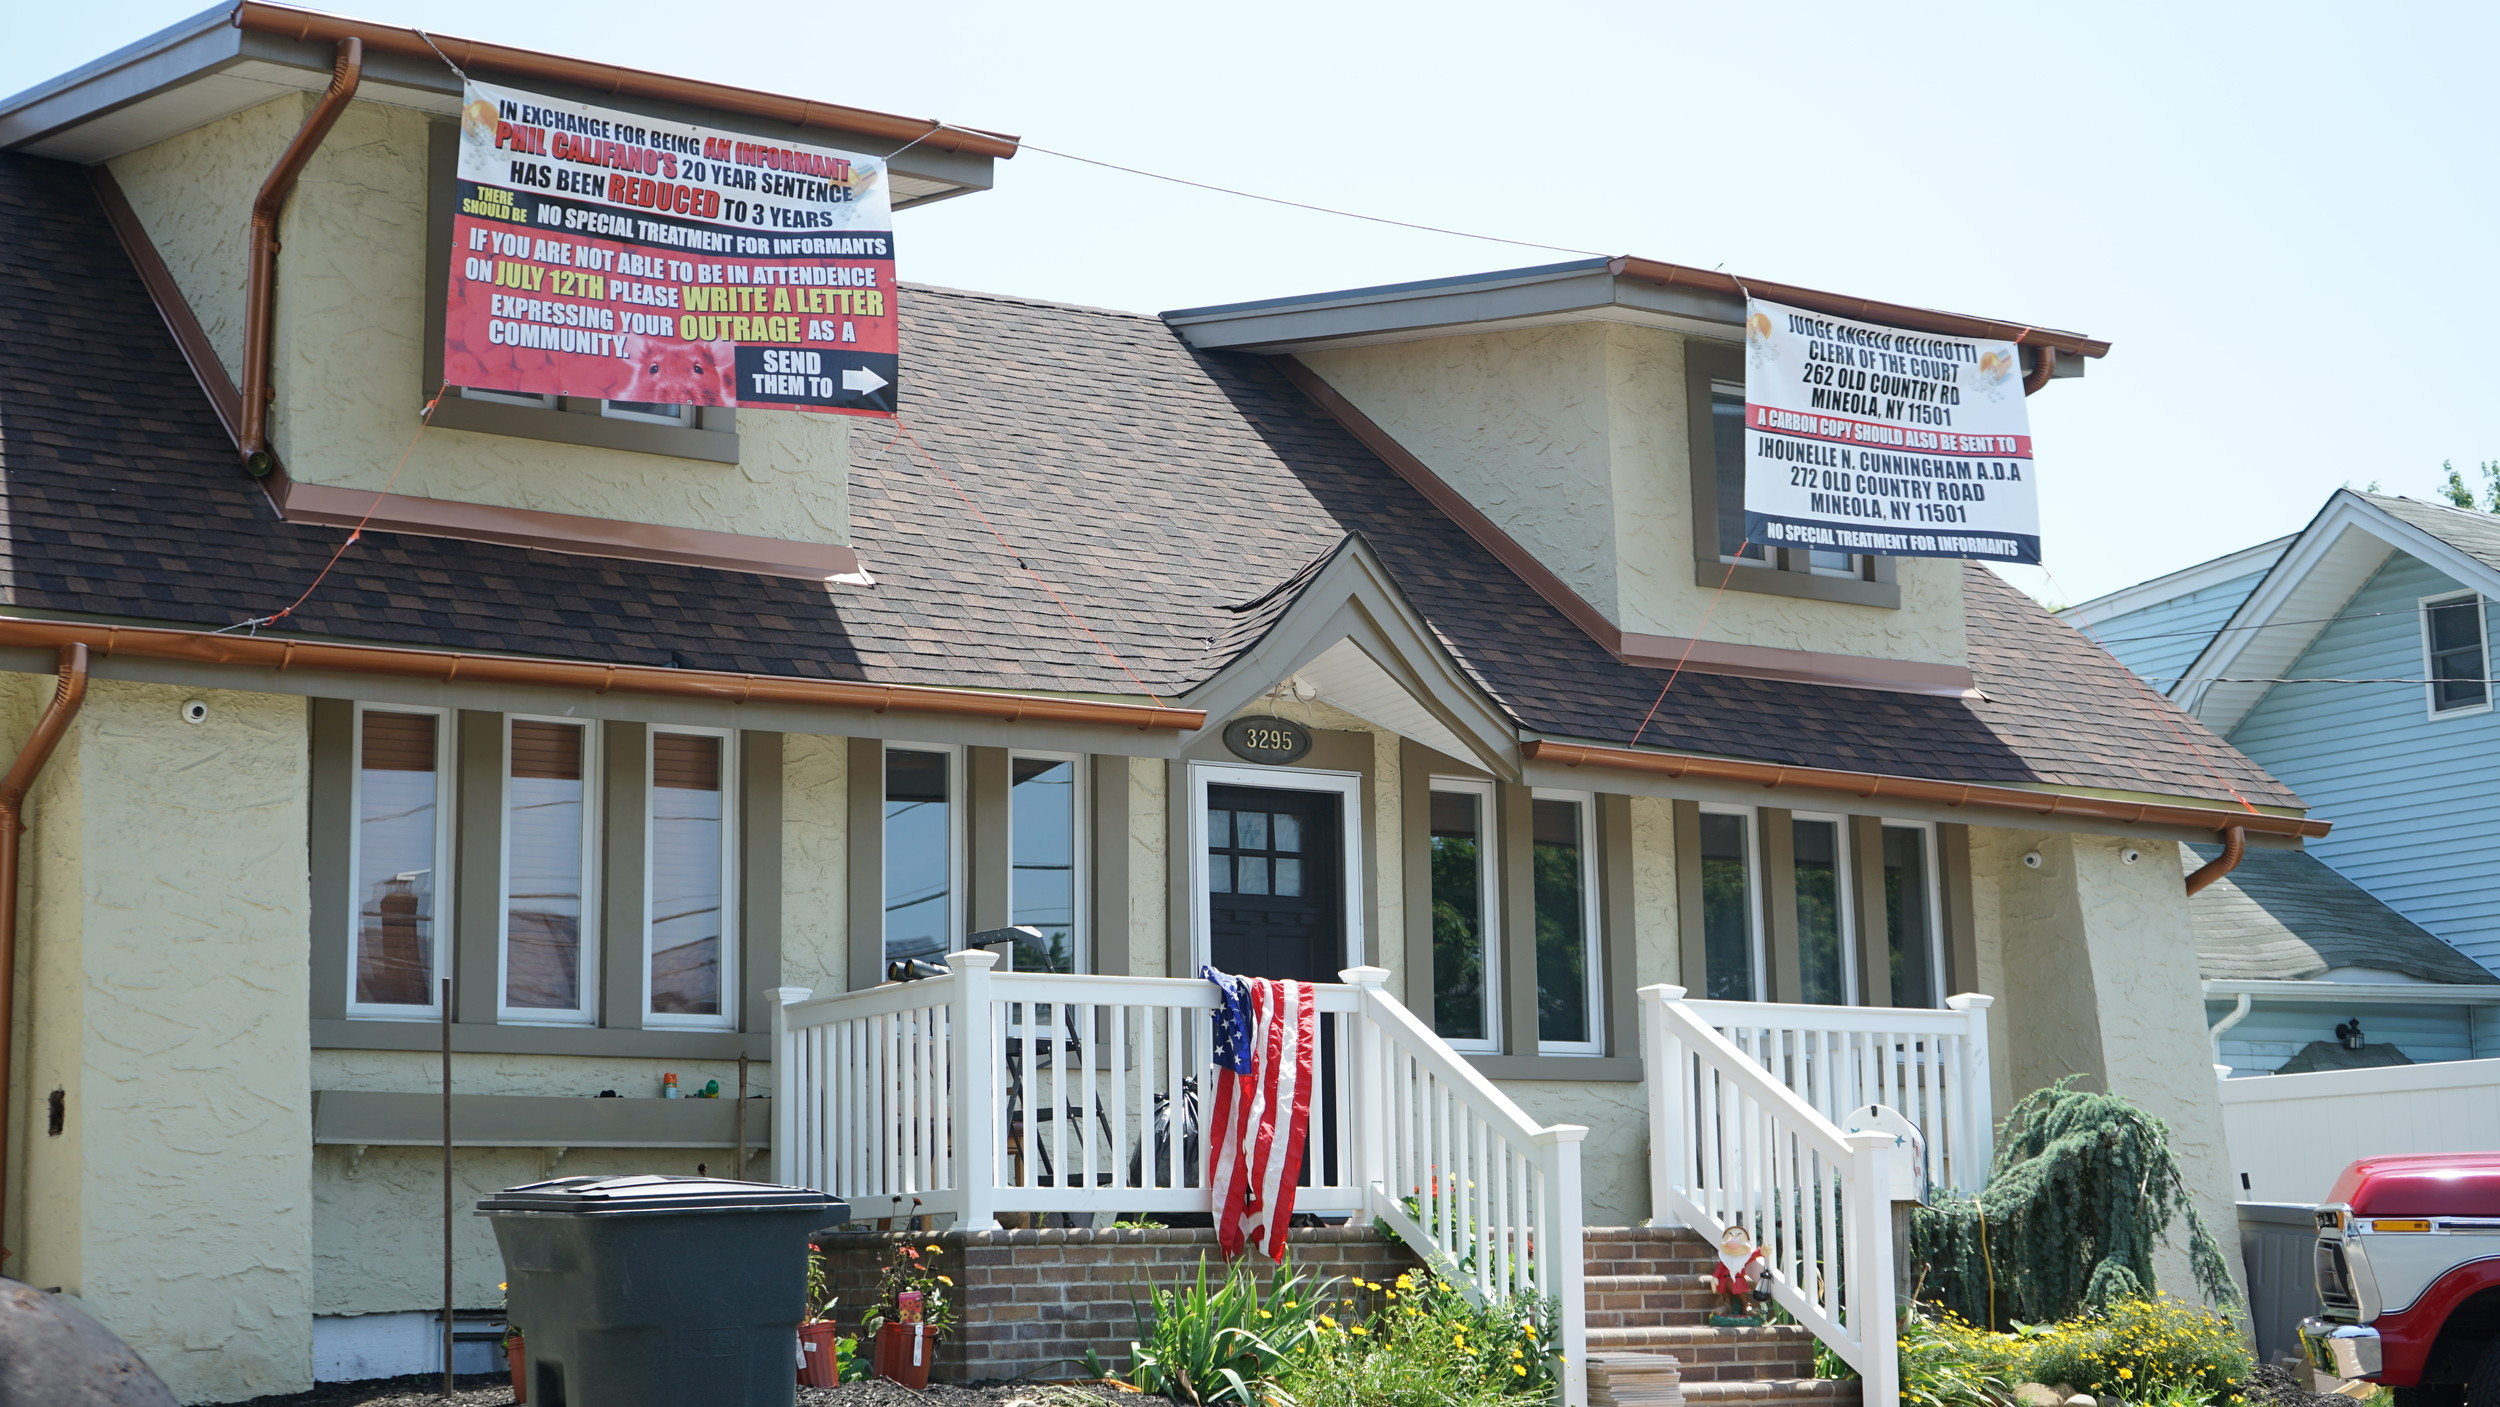 Banners hung outside of Dana Mahan's 4th Street home accusing alleged drug dealer and neighbor Filippo Califano of seeking a plea deal by becoming a confidential informant and imploring residents to protest the secretive practice.